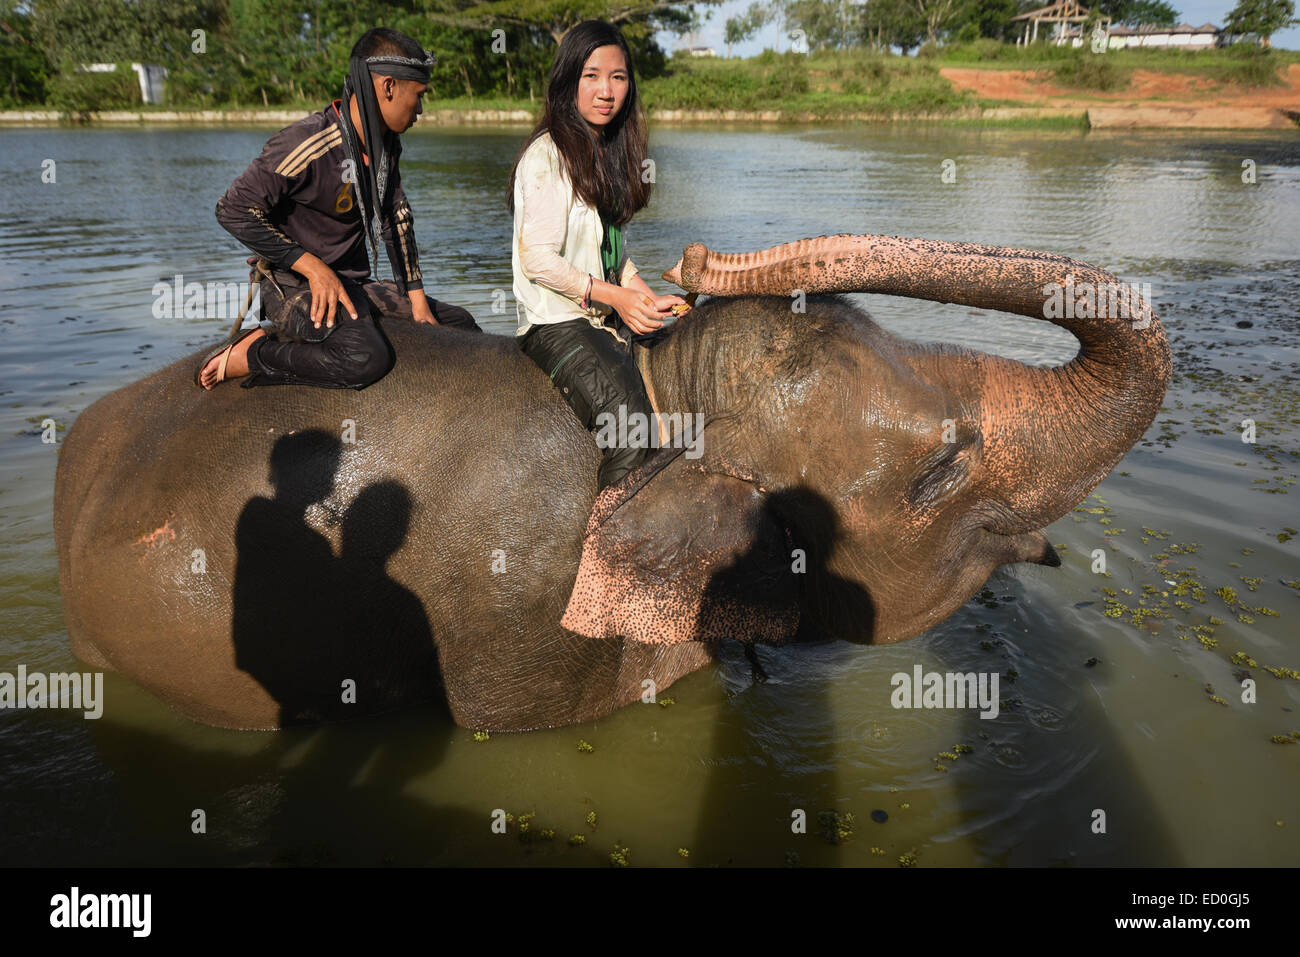 A woman volunteer rides an elephant with an elephant keeper after a bath session in Way Kambas National Park. - Stock Image